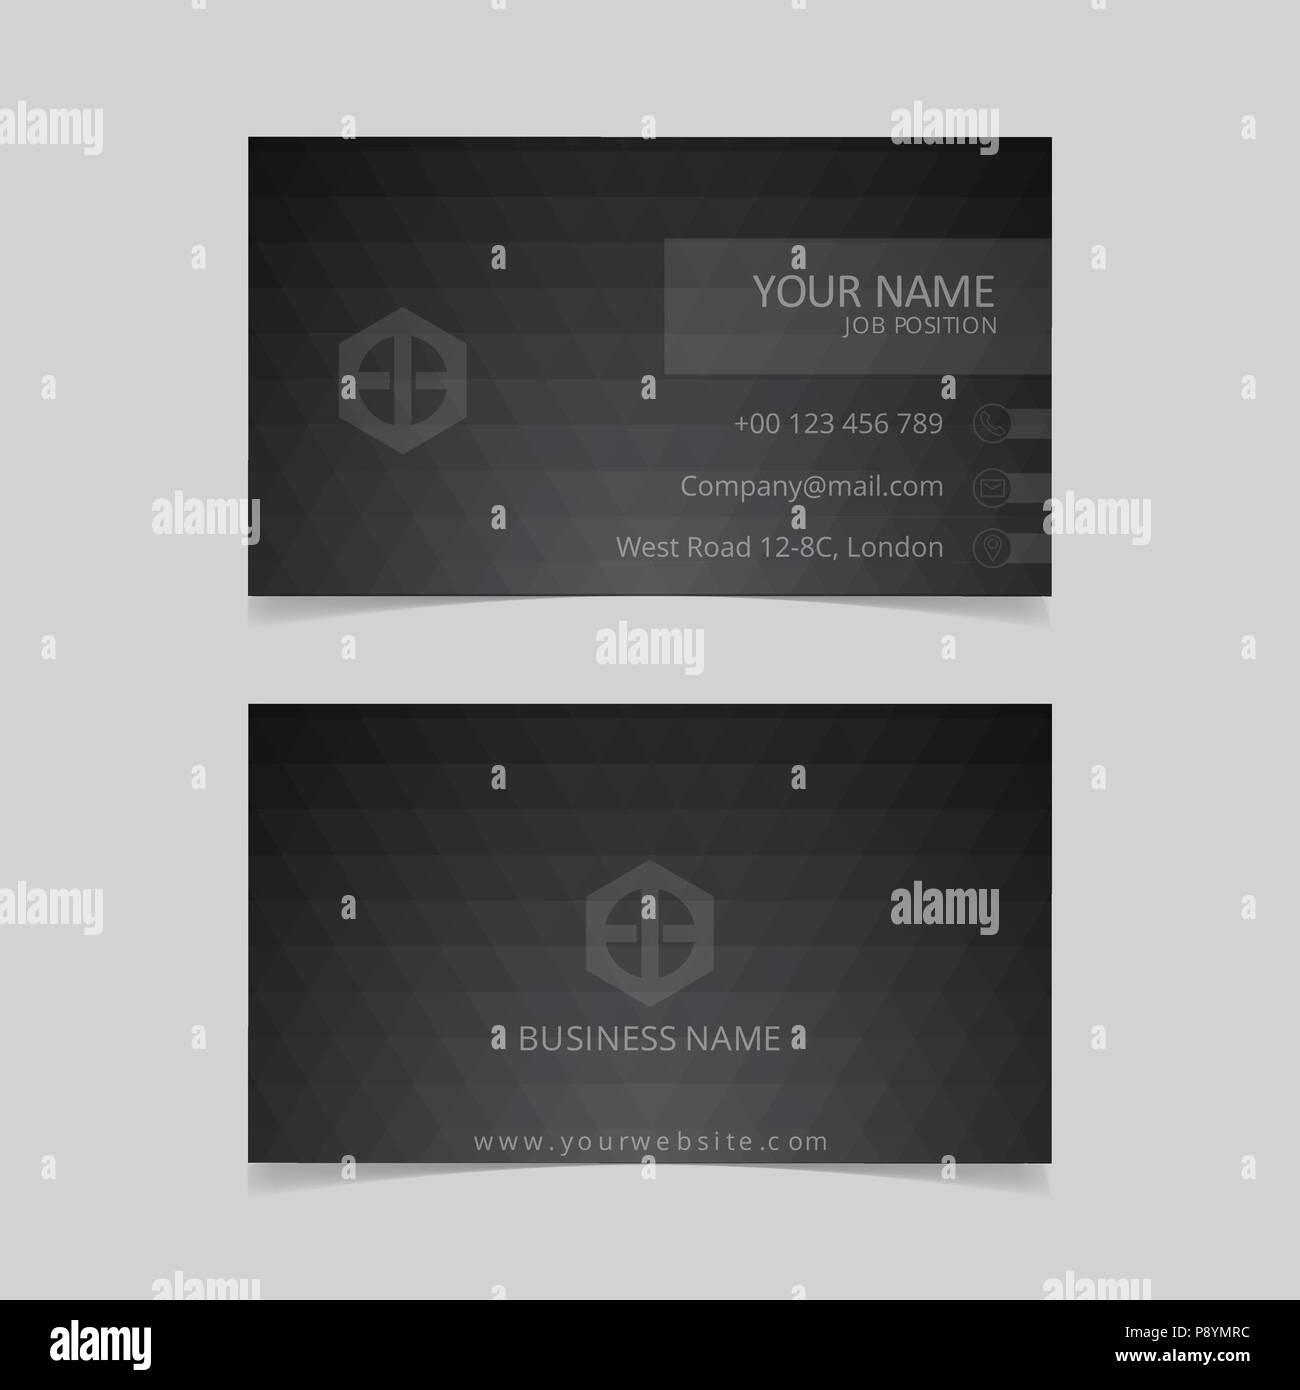 Clean black business card with abstract black pattern for web clean black business card with abstract black pattern for web design and application interface also useful for infographics vector illustration colourmoves